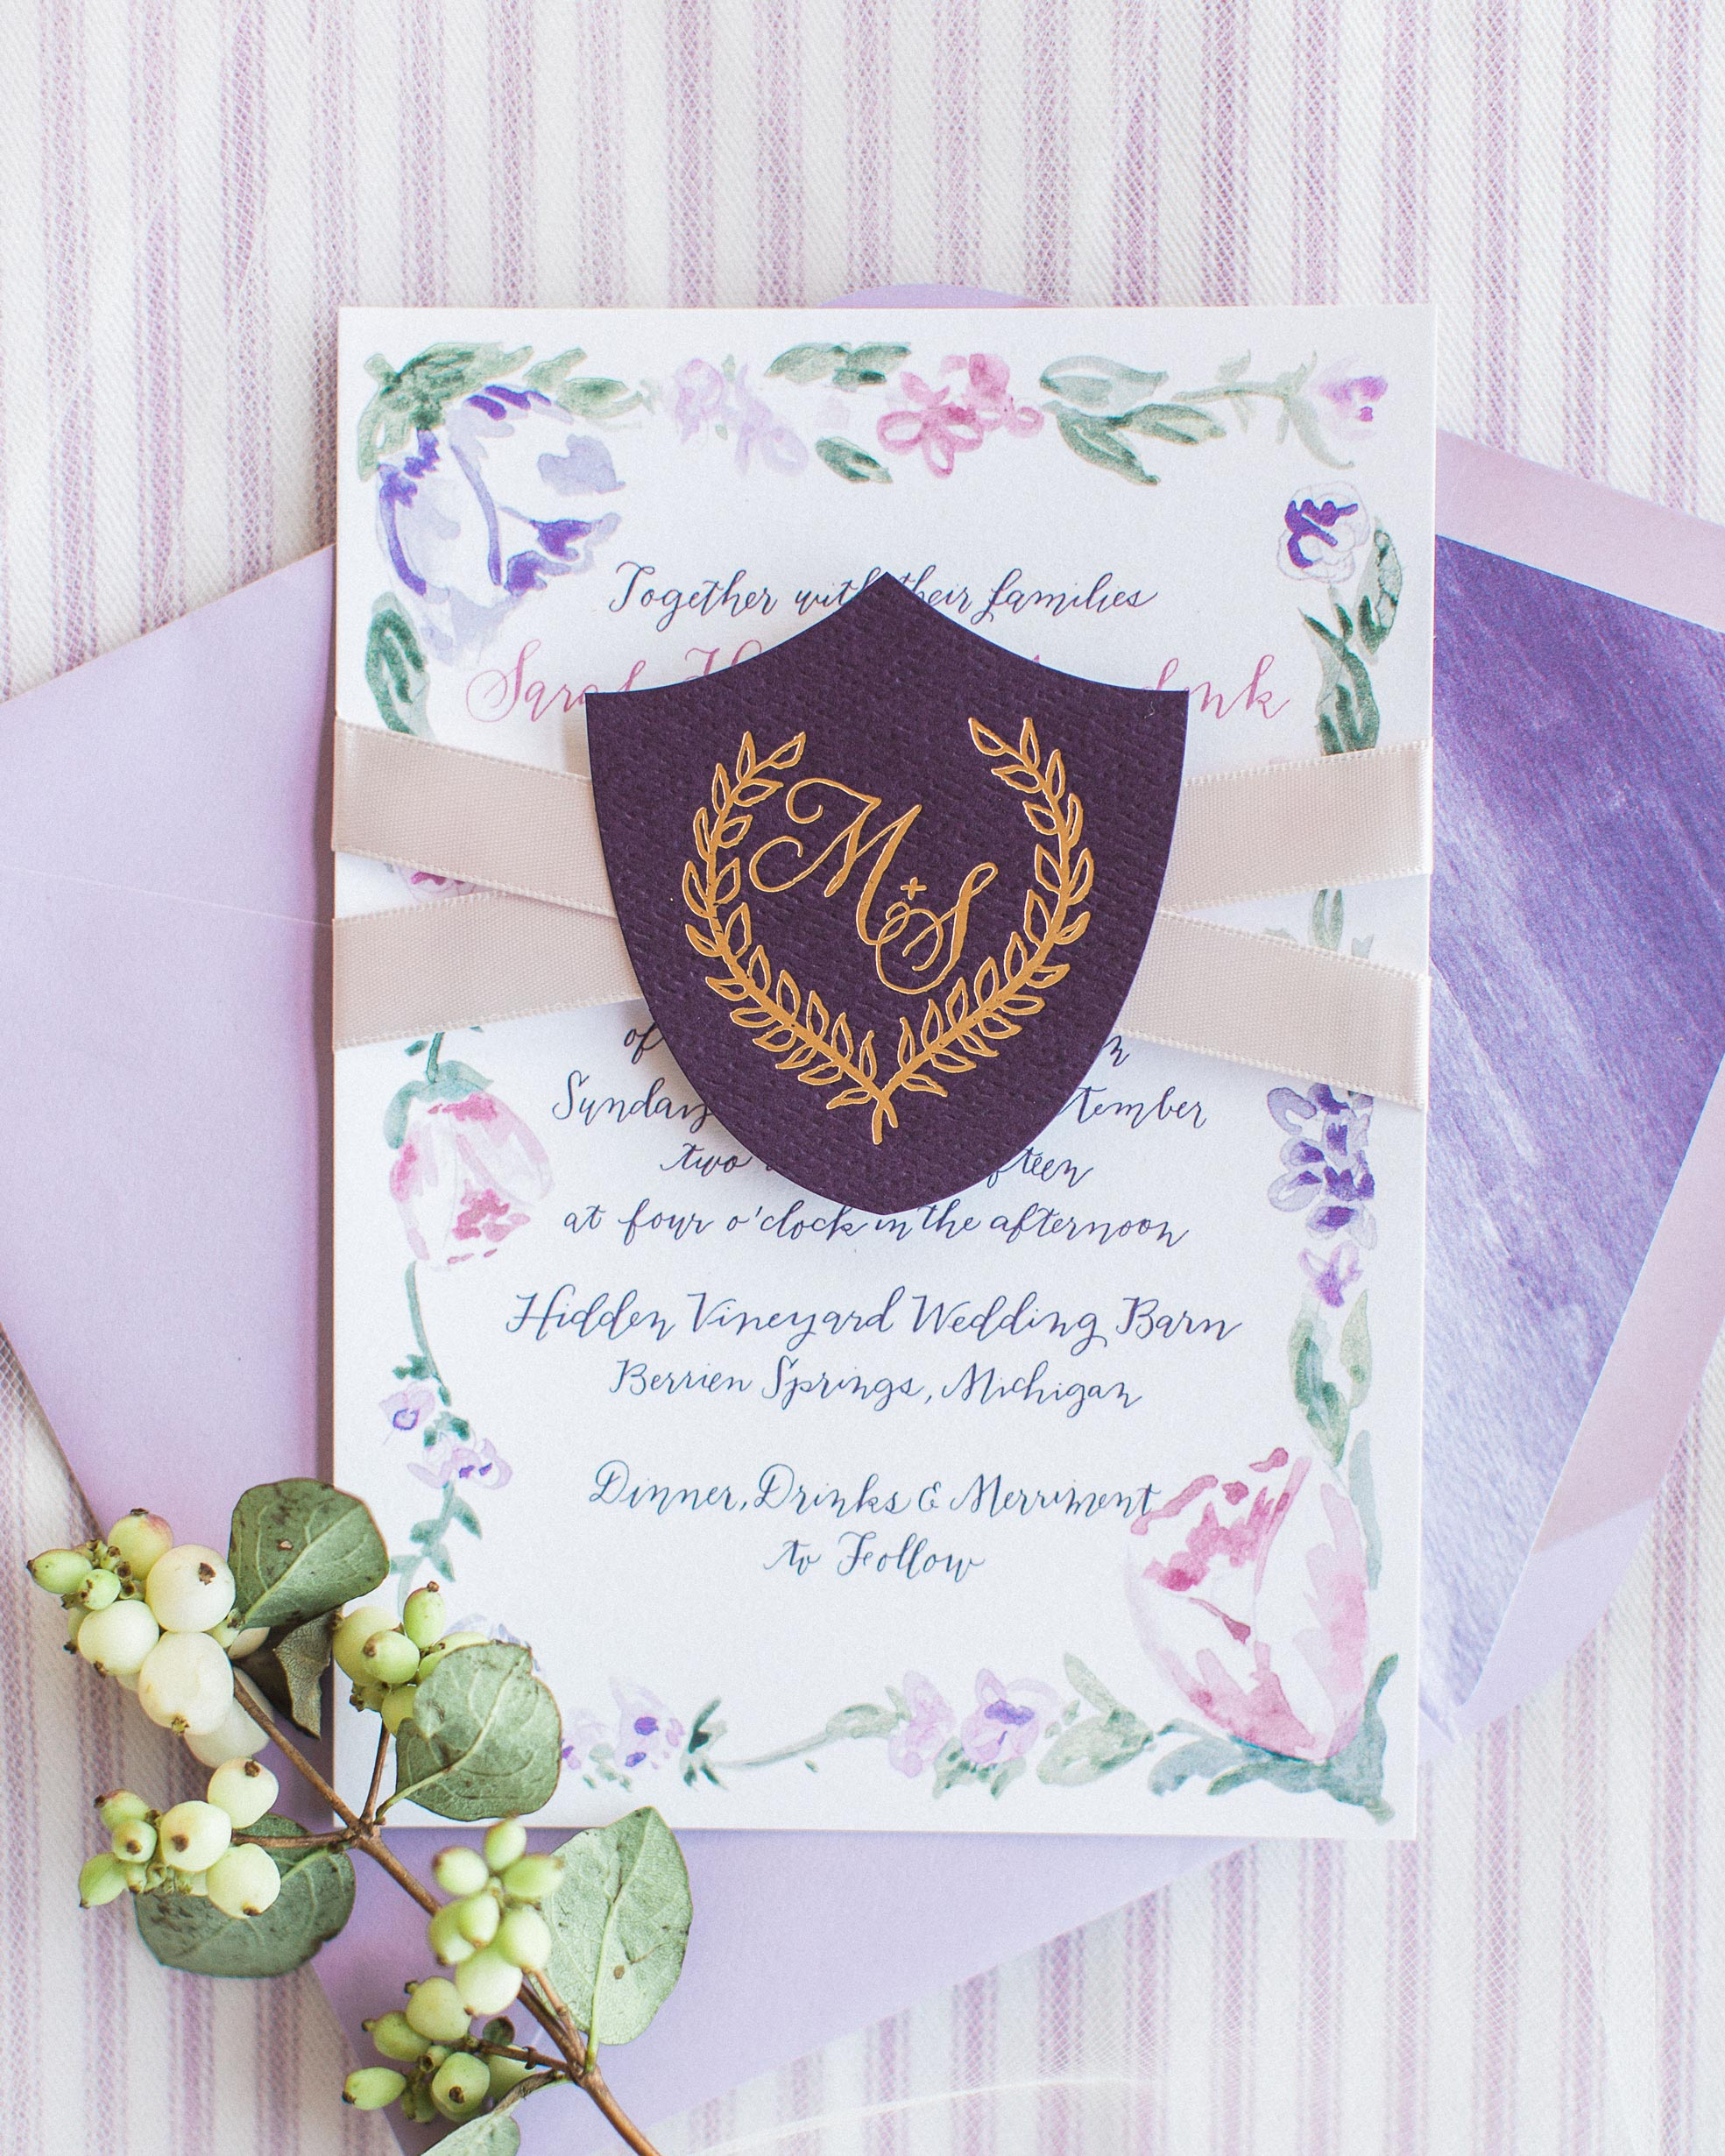 sarah-michael-wedding-invitation-15-s112783-0416.jpg